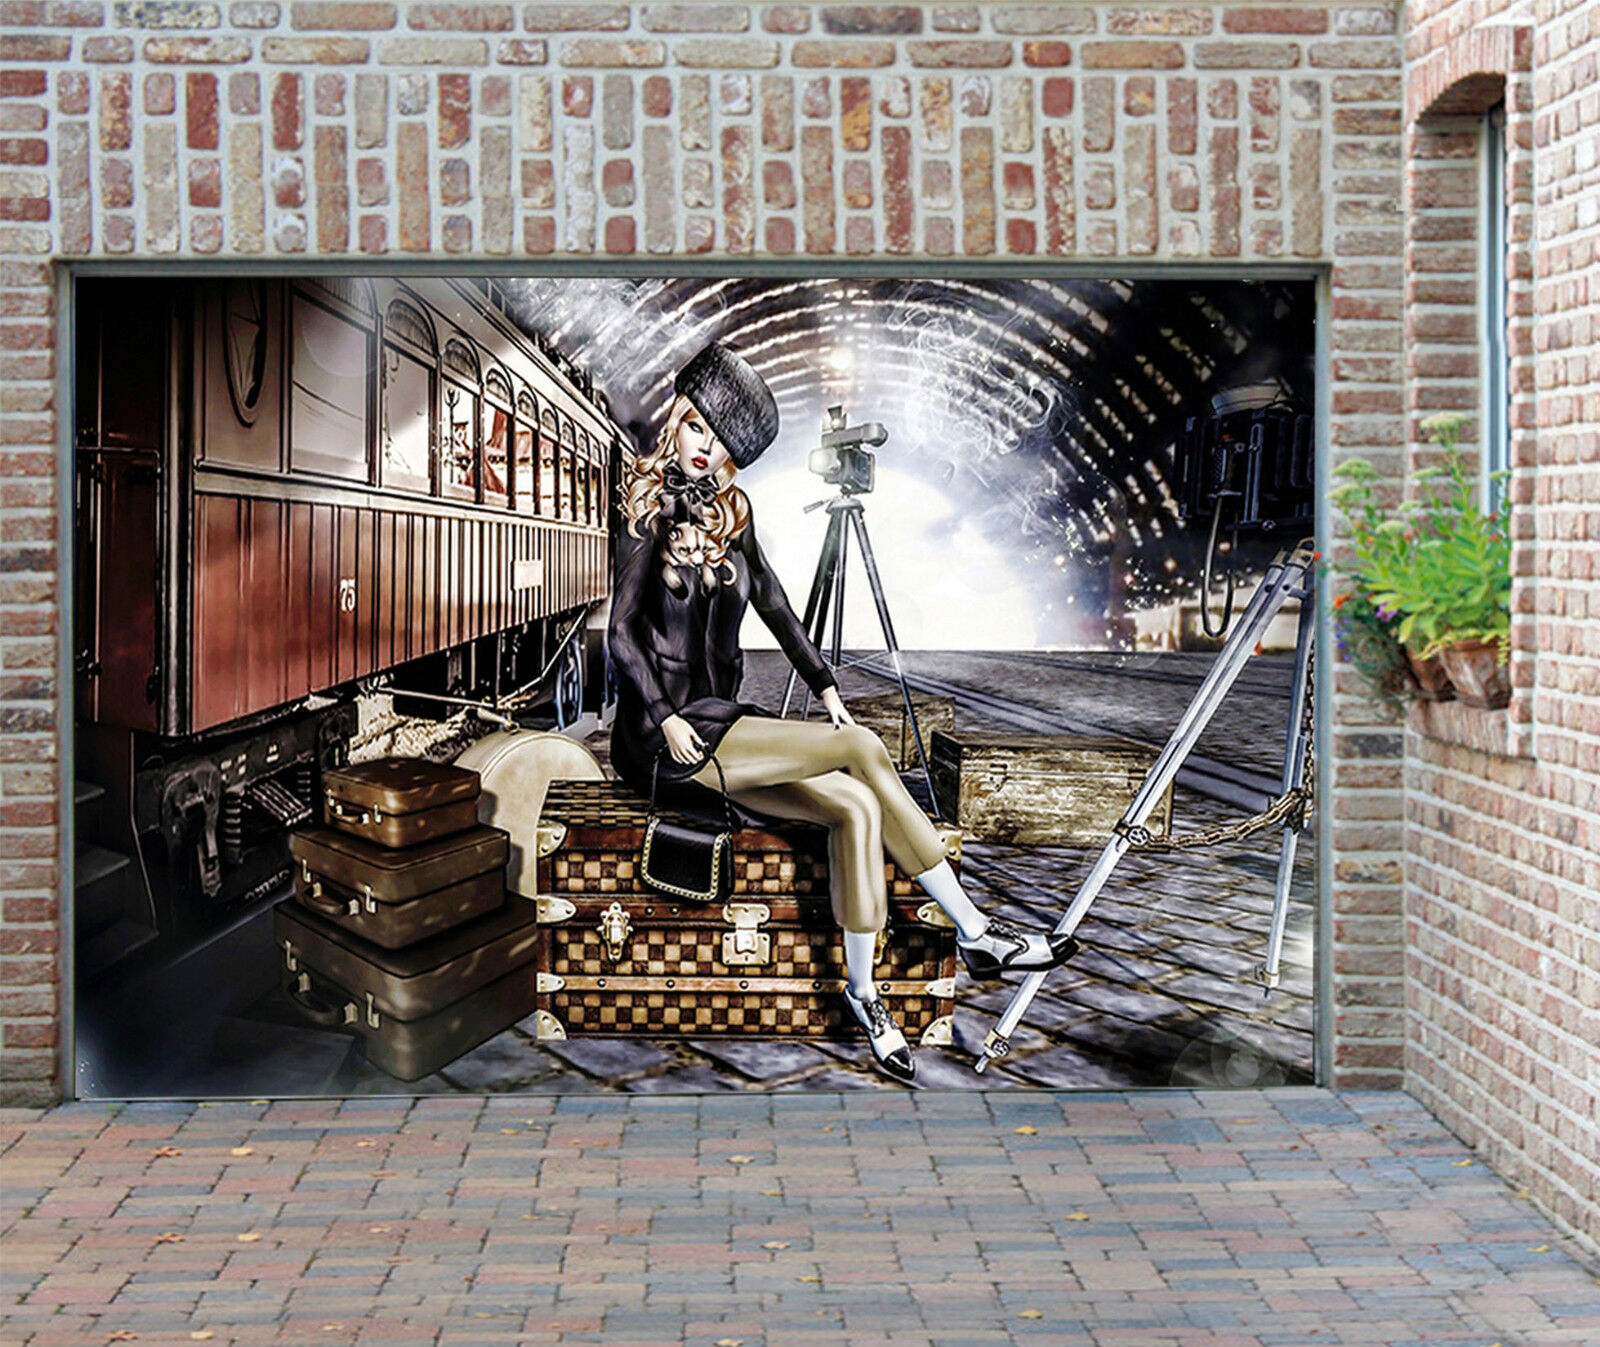 3D Bellezza 015 Garage Porta Stampe Parete Decorazione Murale AJ WALLPAPER IT